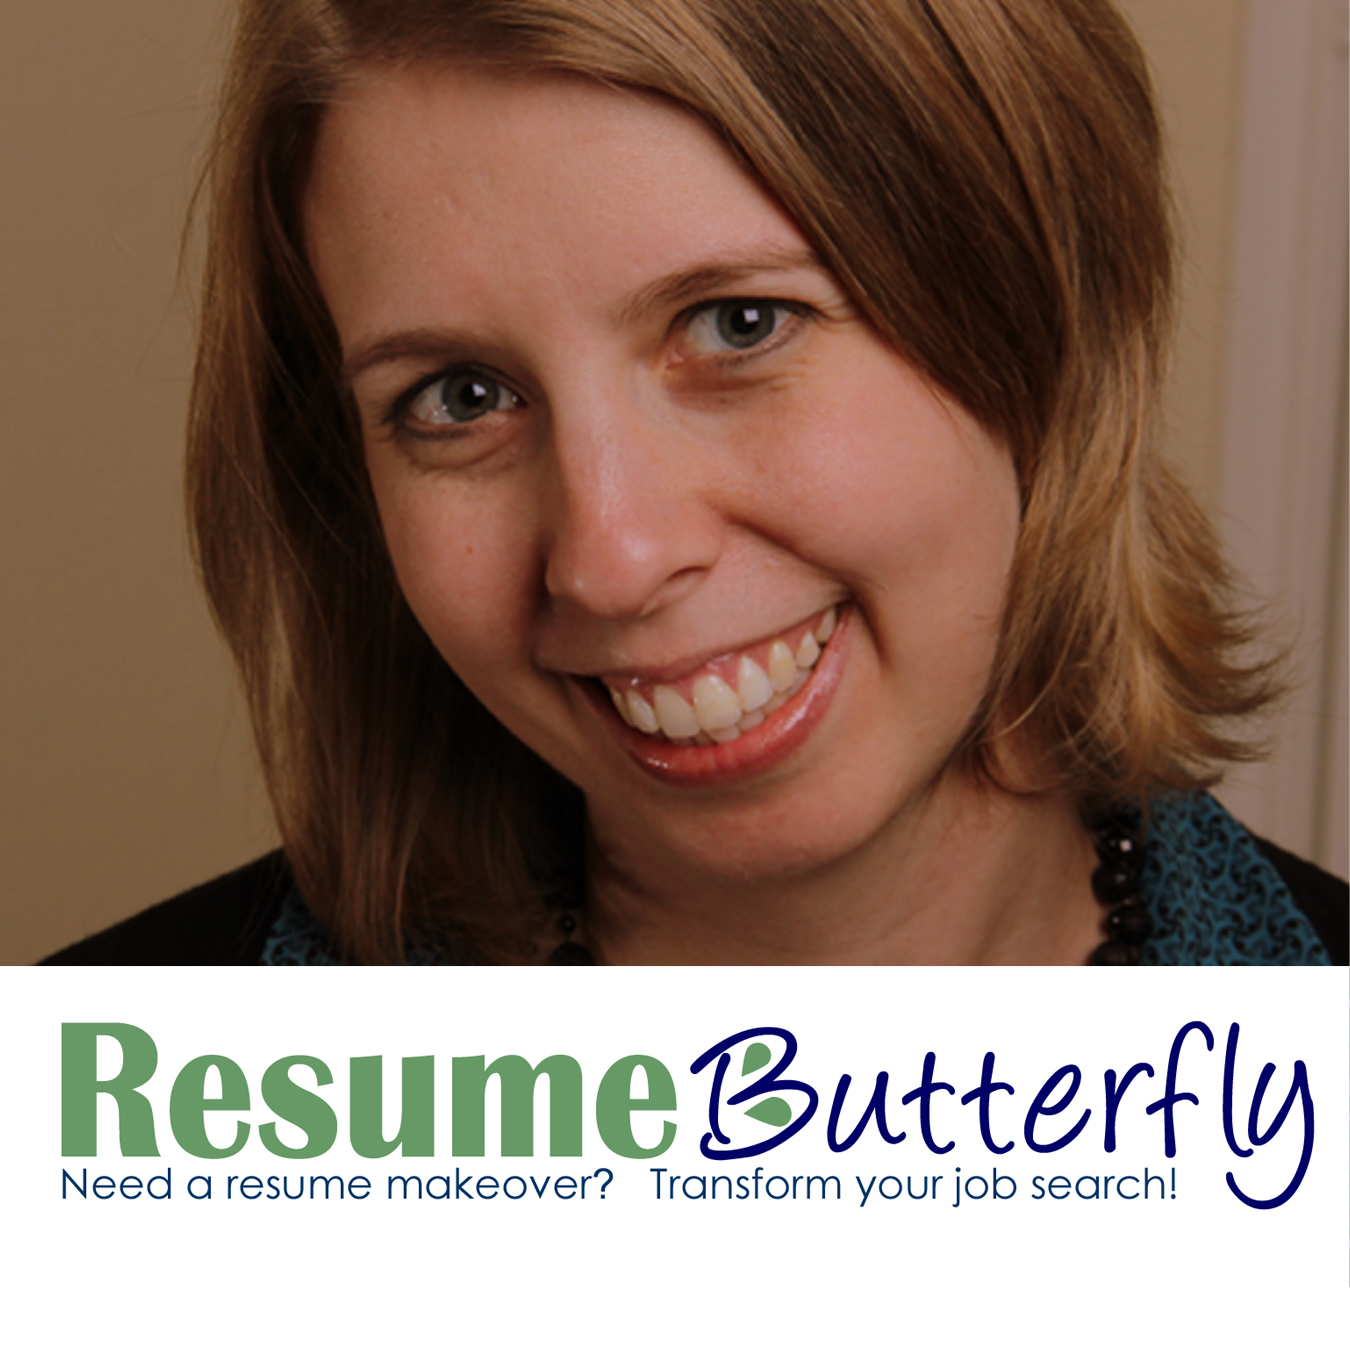 about resume butterfly need a resume makeover transform your job